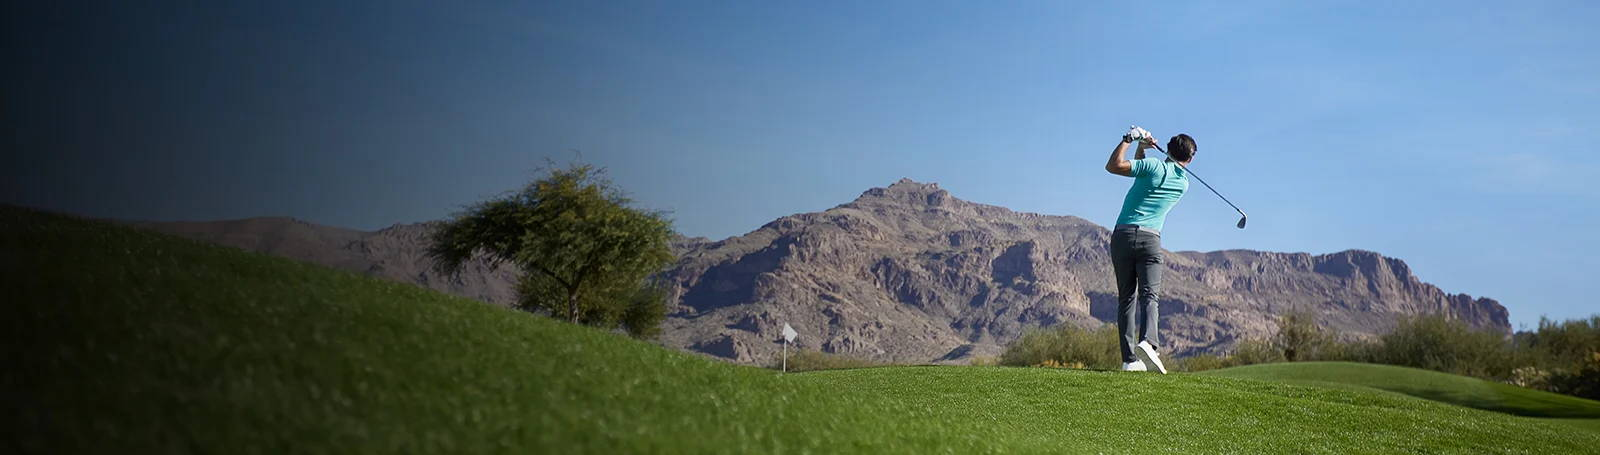 Man on swinging on a golf course in the mountains